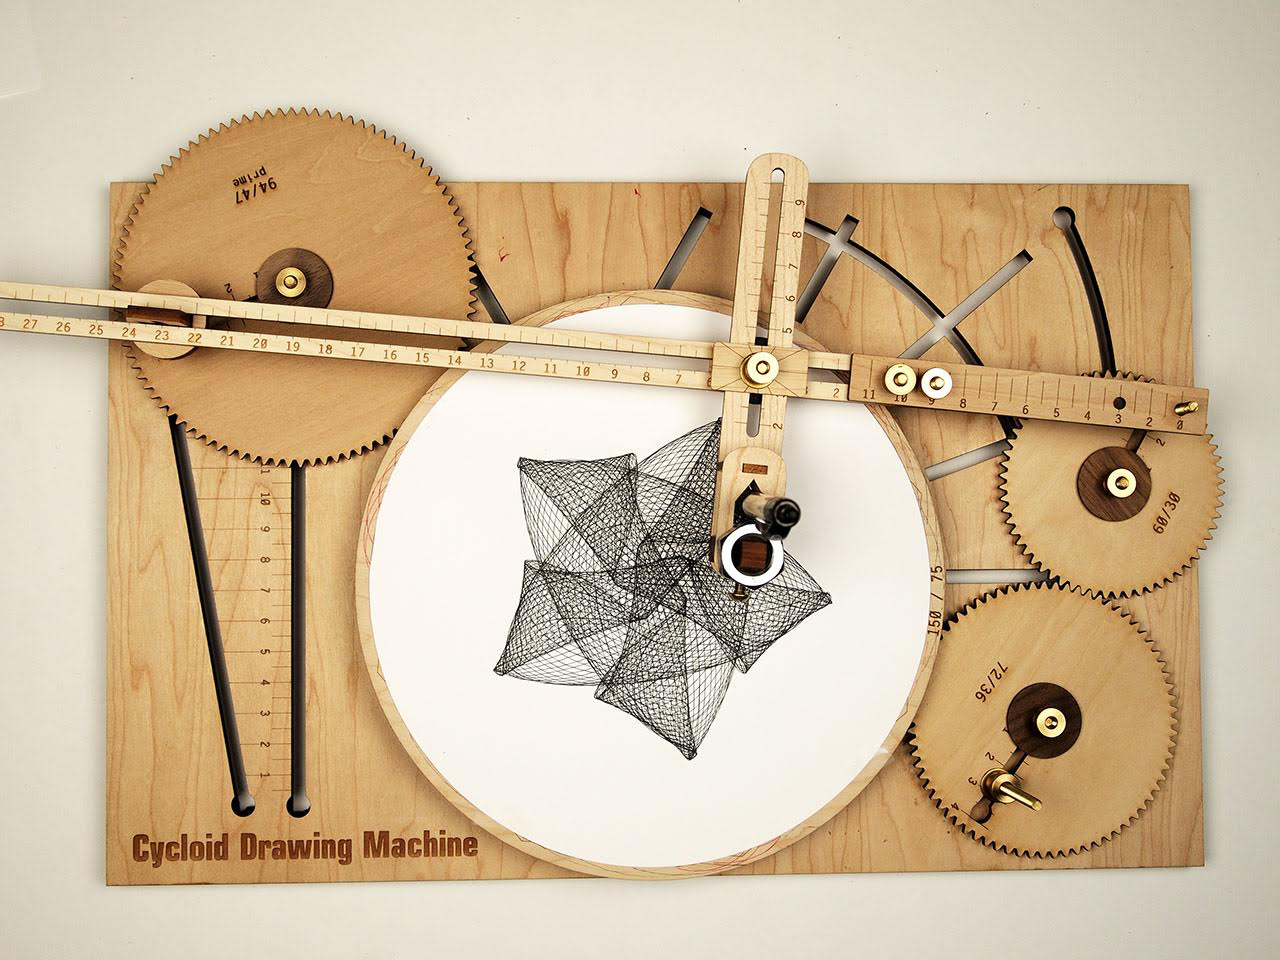 Sketch Intricate Designs with A Hand-Cranked Drawing Machine